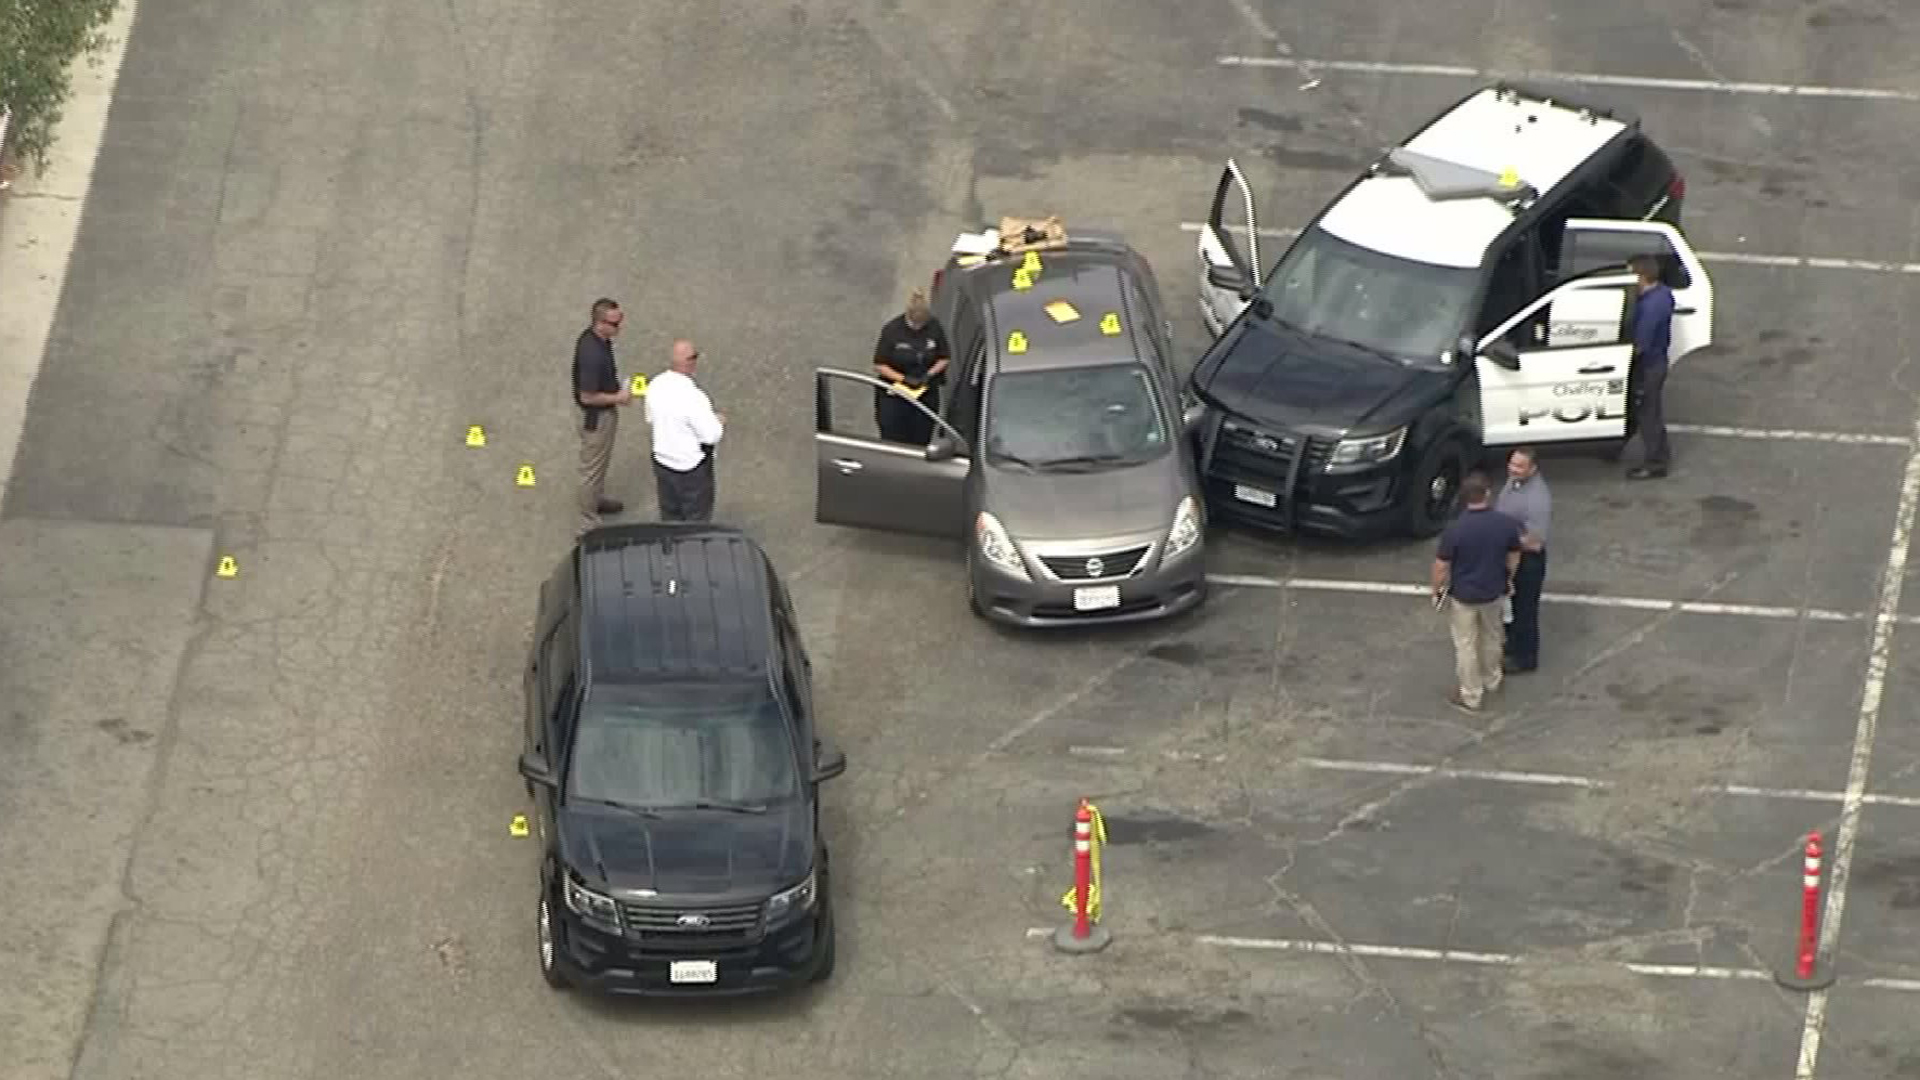 Evidence markers are seen on a car at Chaffey College on July 25, 2017. (Credit: KTLA)